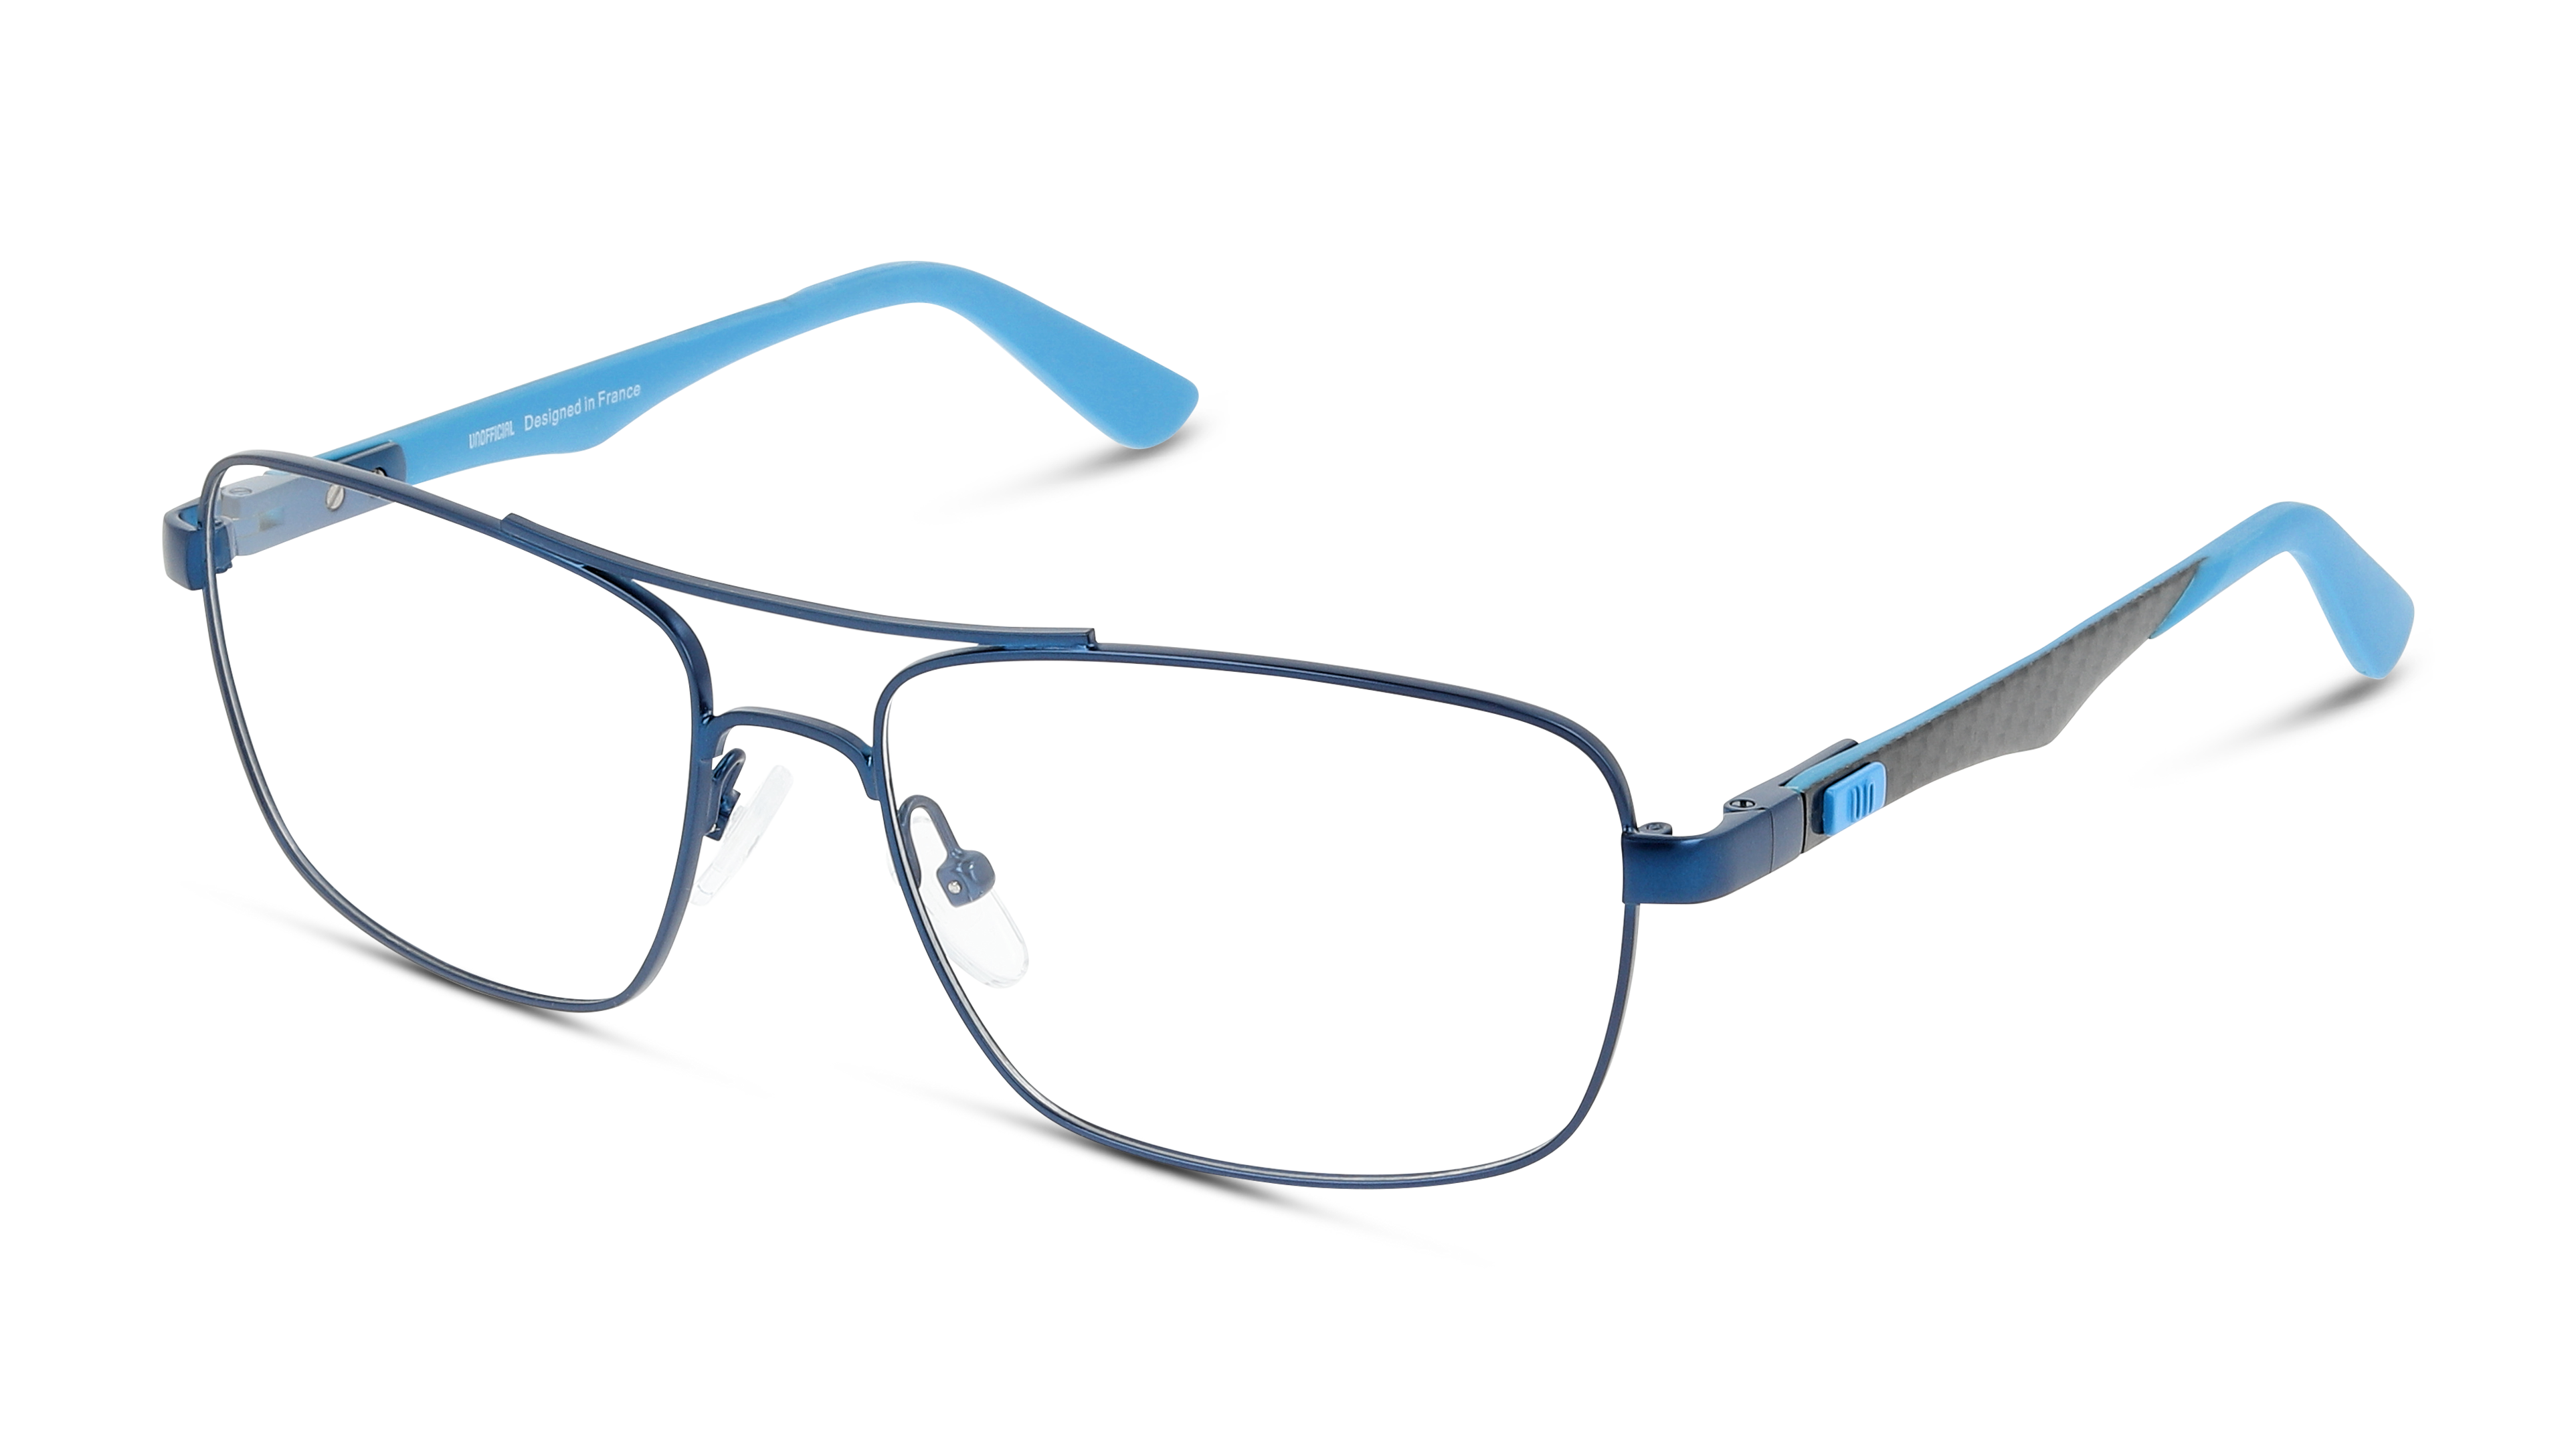 Angle_Left01 Unofficial Unoffic UNOM0091 CL00 56/16 Blauw